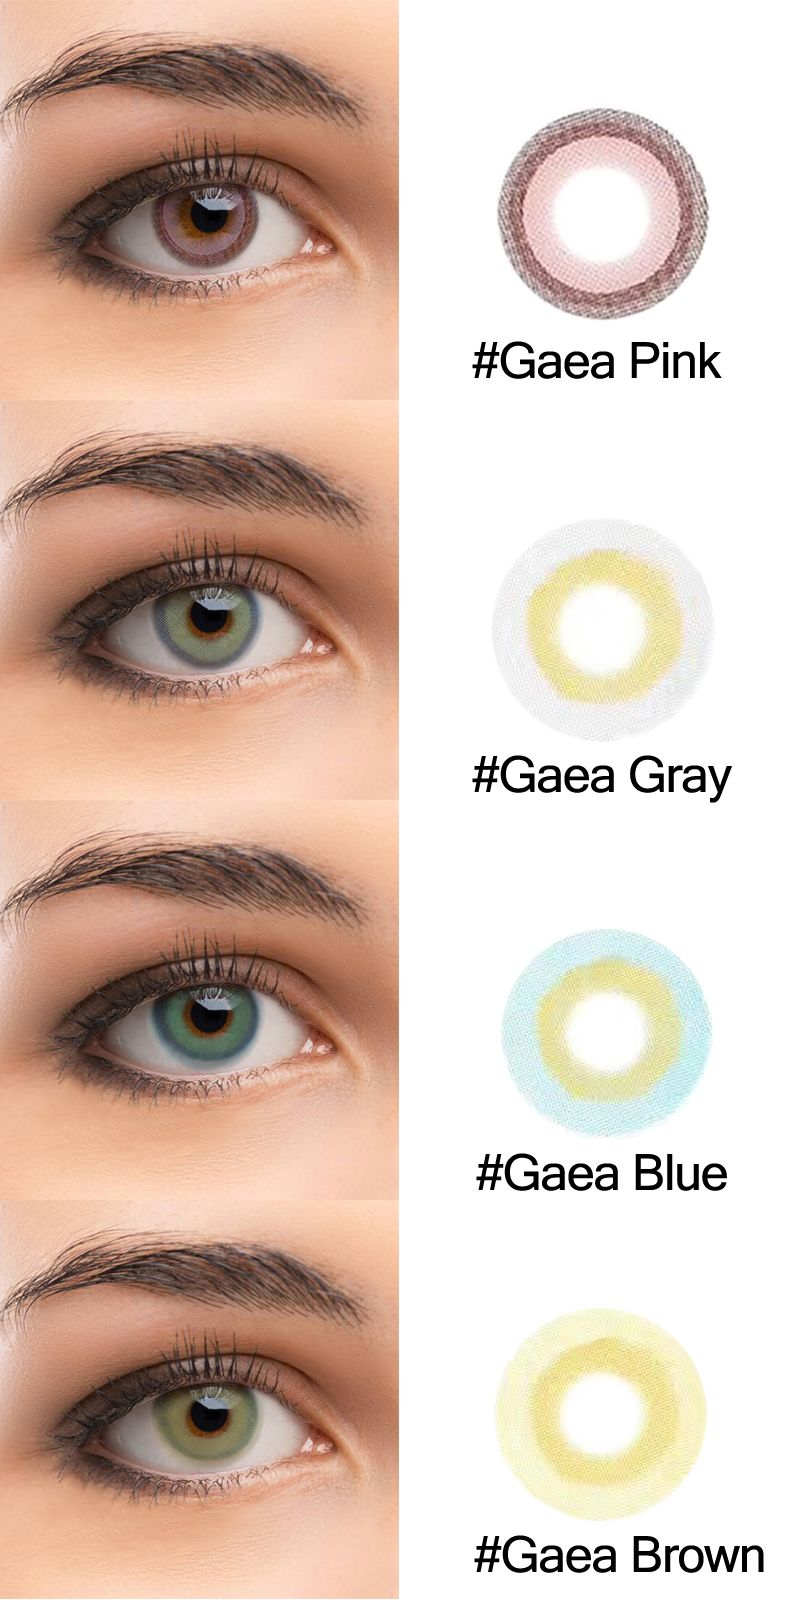 70e2a48511 New Brand Colored Lenses Tolytolly . Gaea series has four 4 colors ...